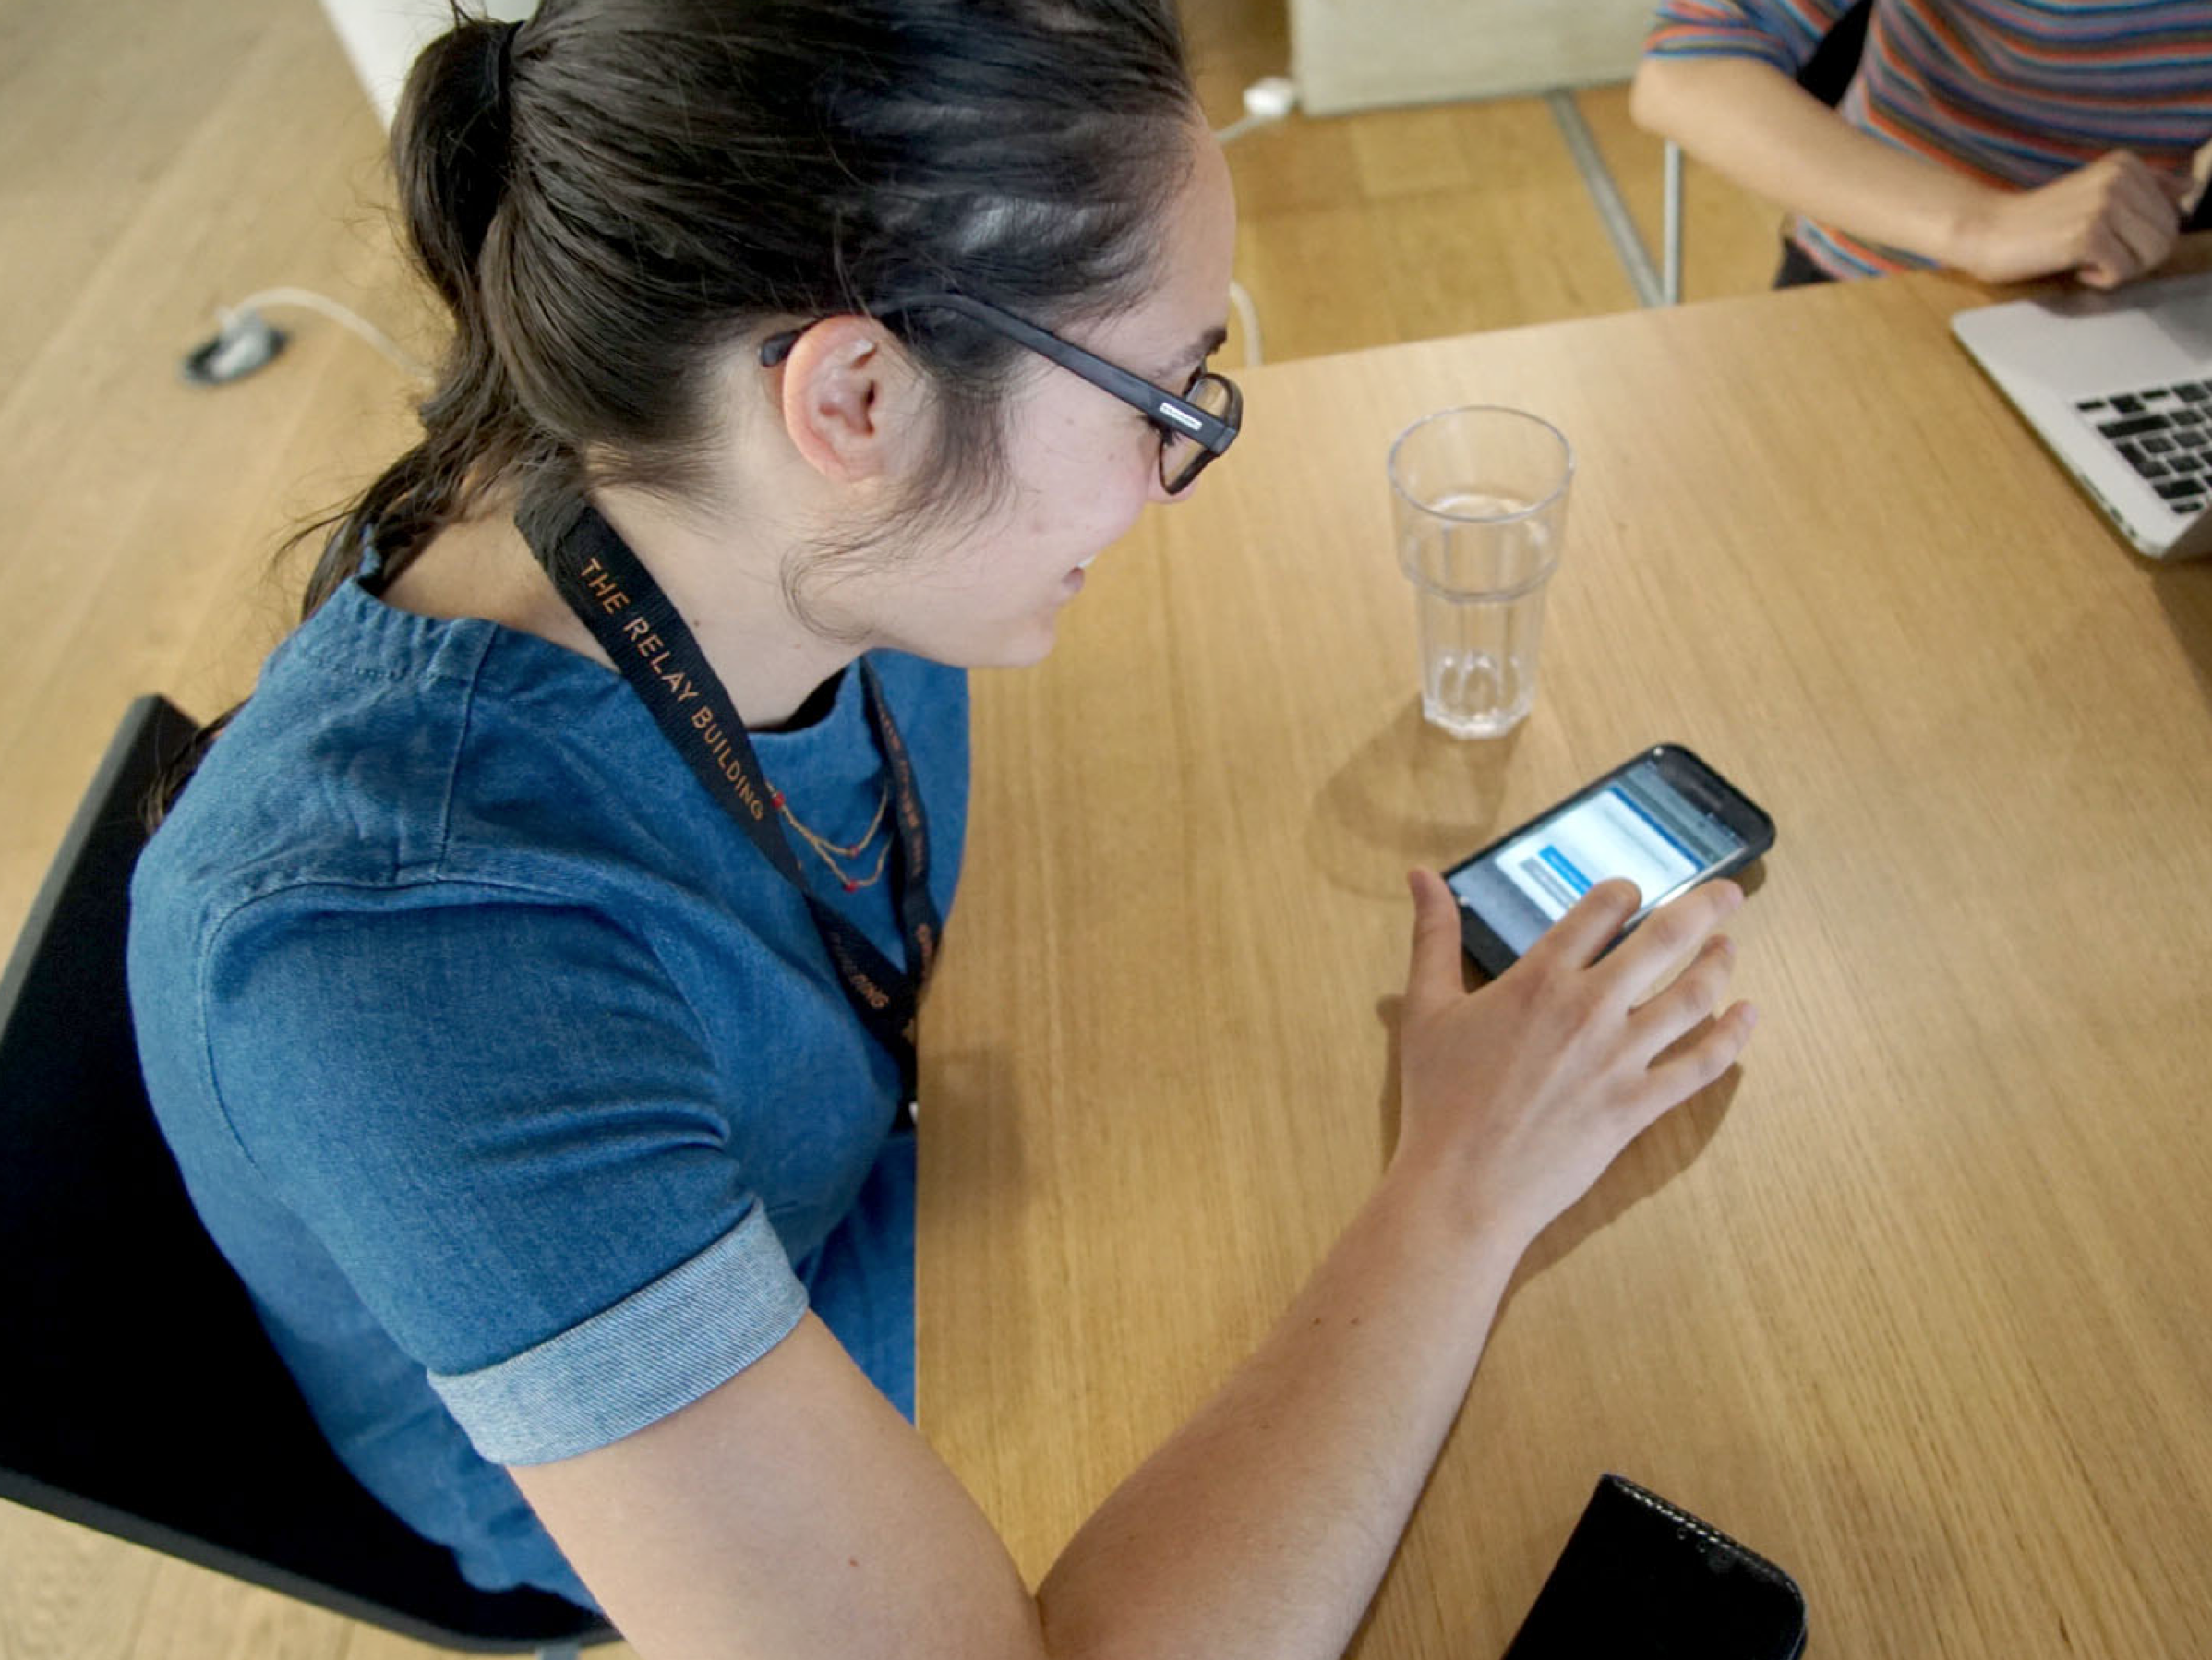 User research - We spoke to 10 hospital-based junior doctors, all of whom currently work either 'bank' or locum shifts. For each participant we conducted 15-minute task-based app usability testing (on the existing app) and then 30-minute user interviews (about their current experience booking 'bank' shifts).